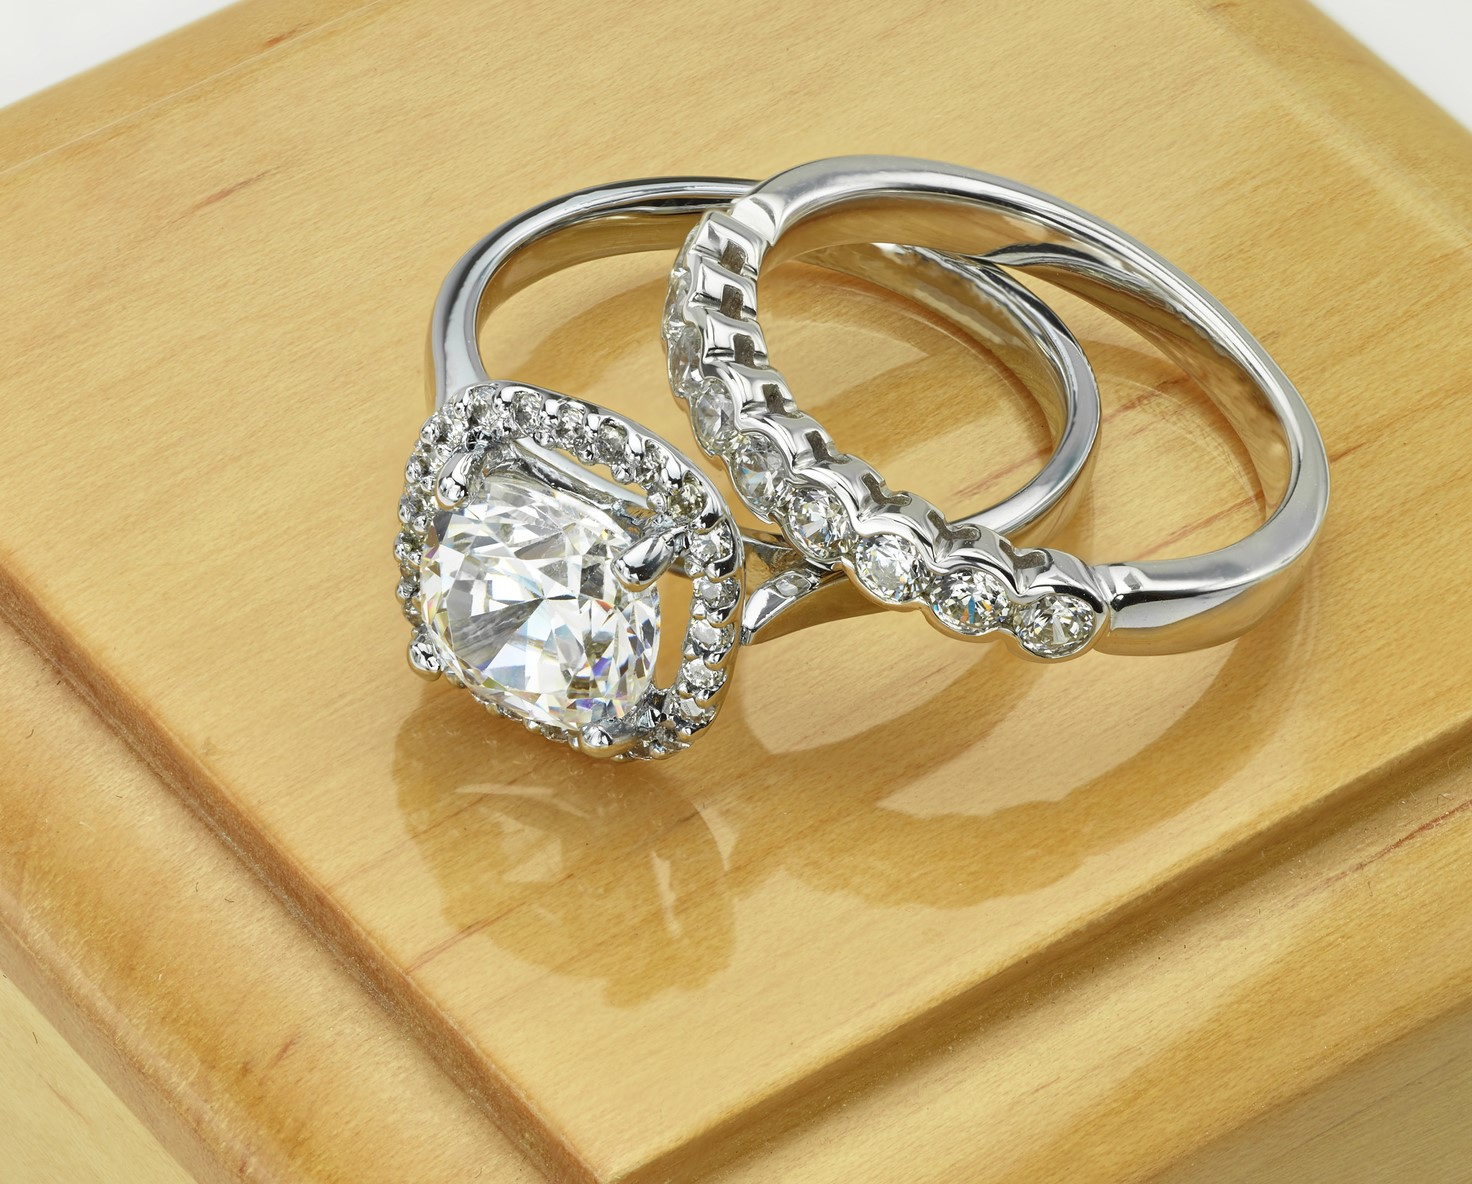 Jewelry Roundtable: Simple Vs Flashy Engagement Rings